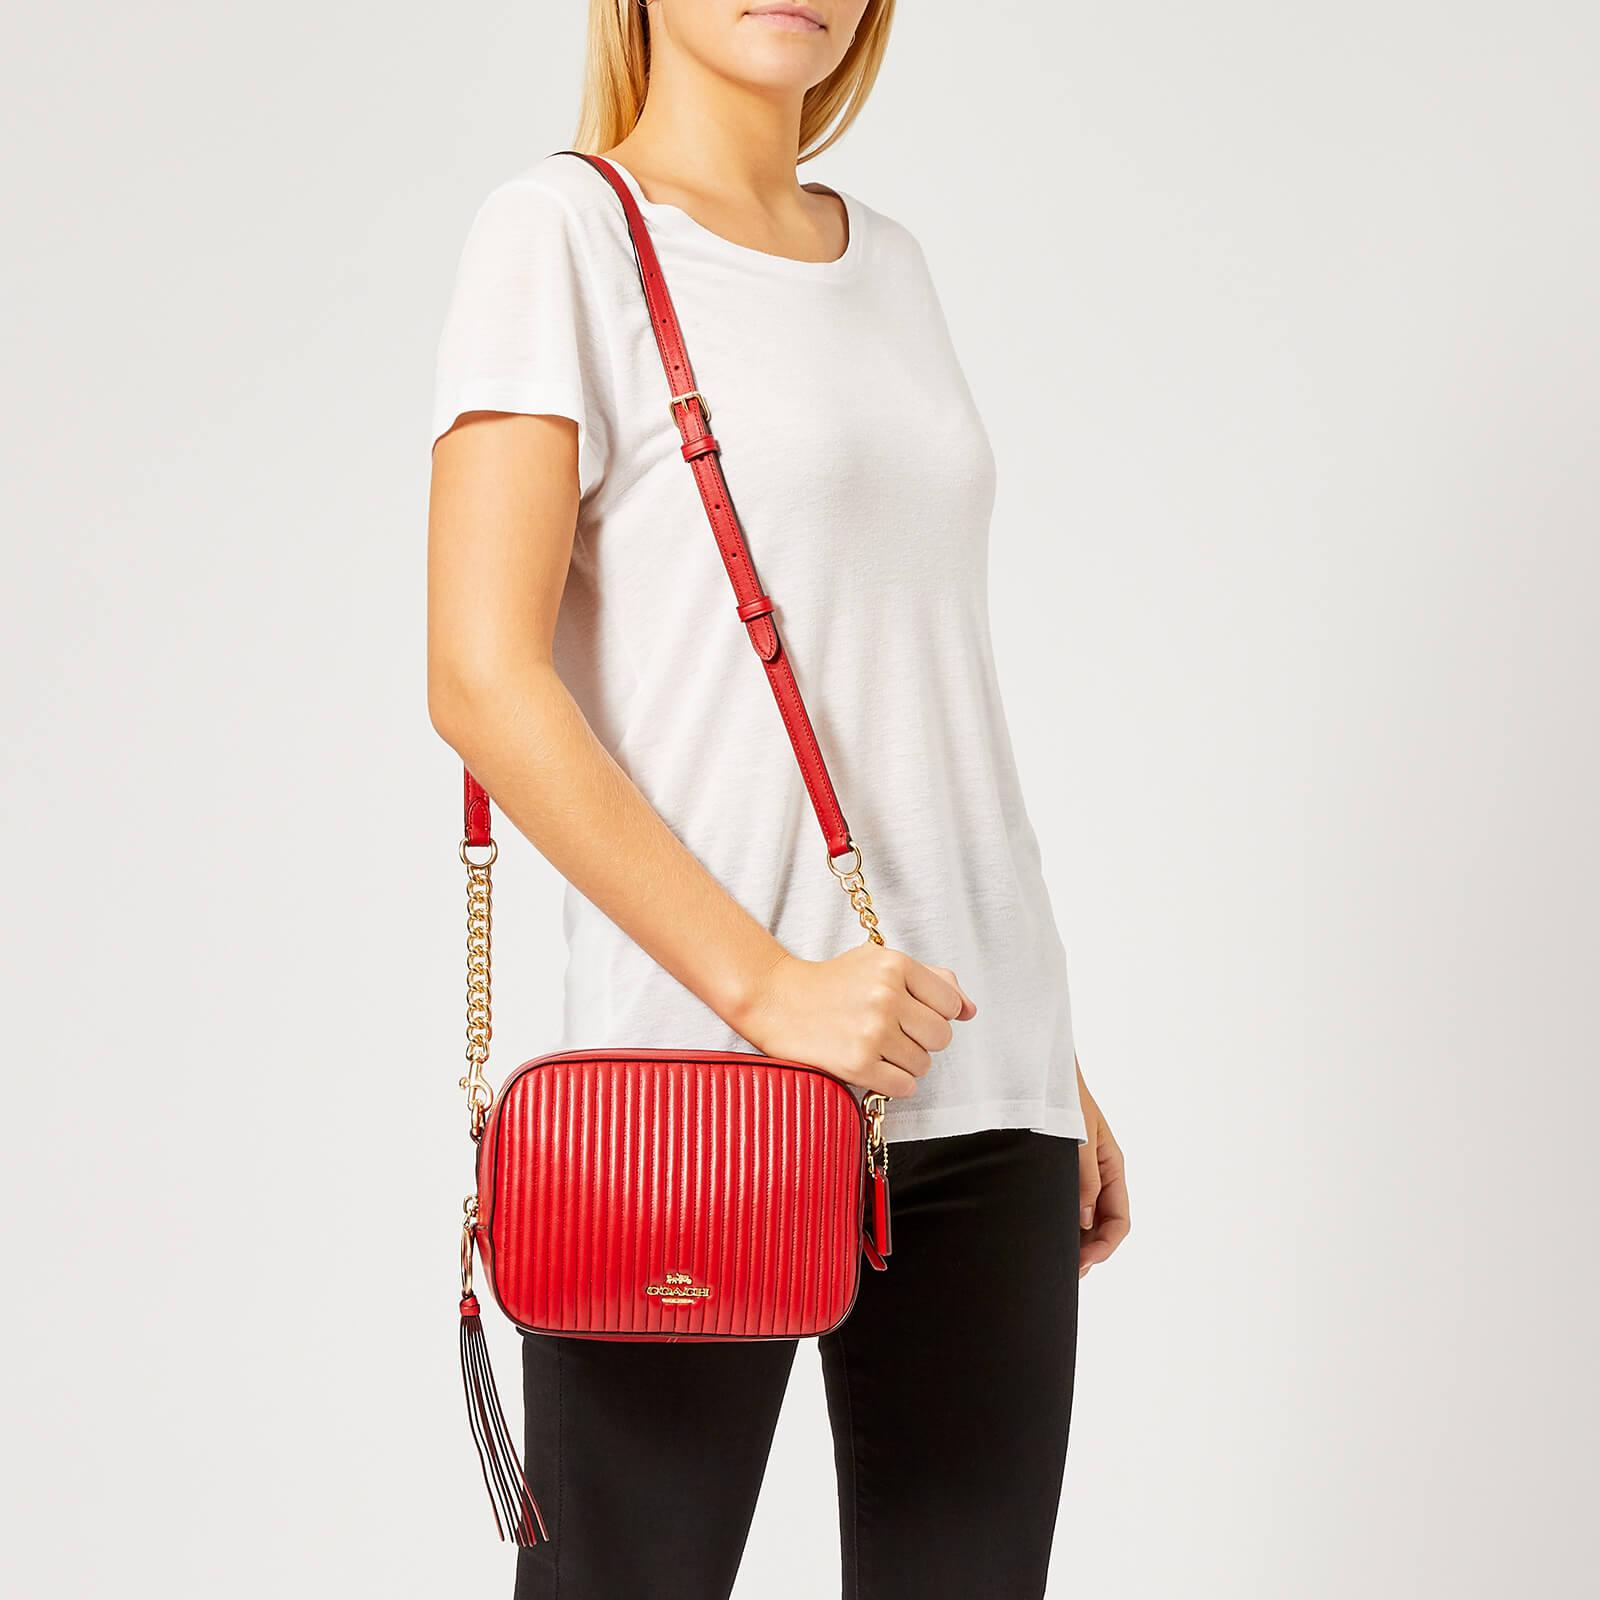 c72ca053383e Lyst - COACH Quilted Leather Camera Bag in Red